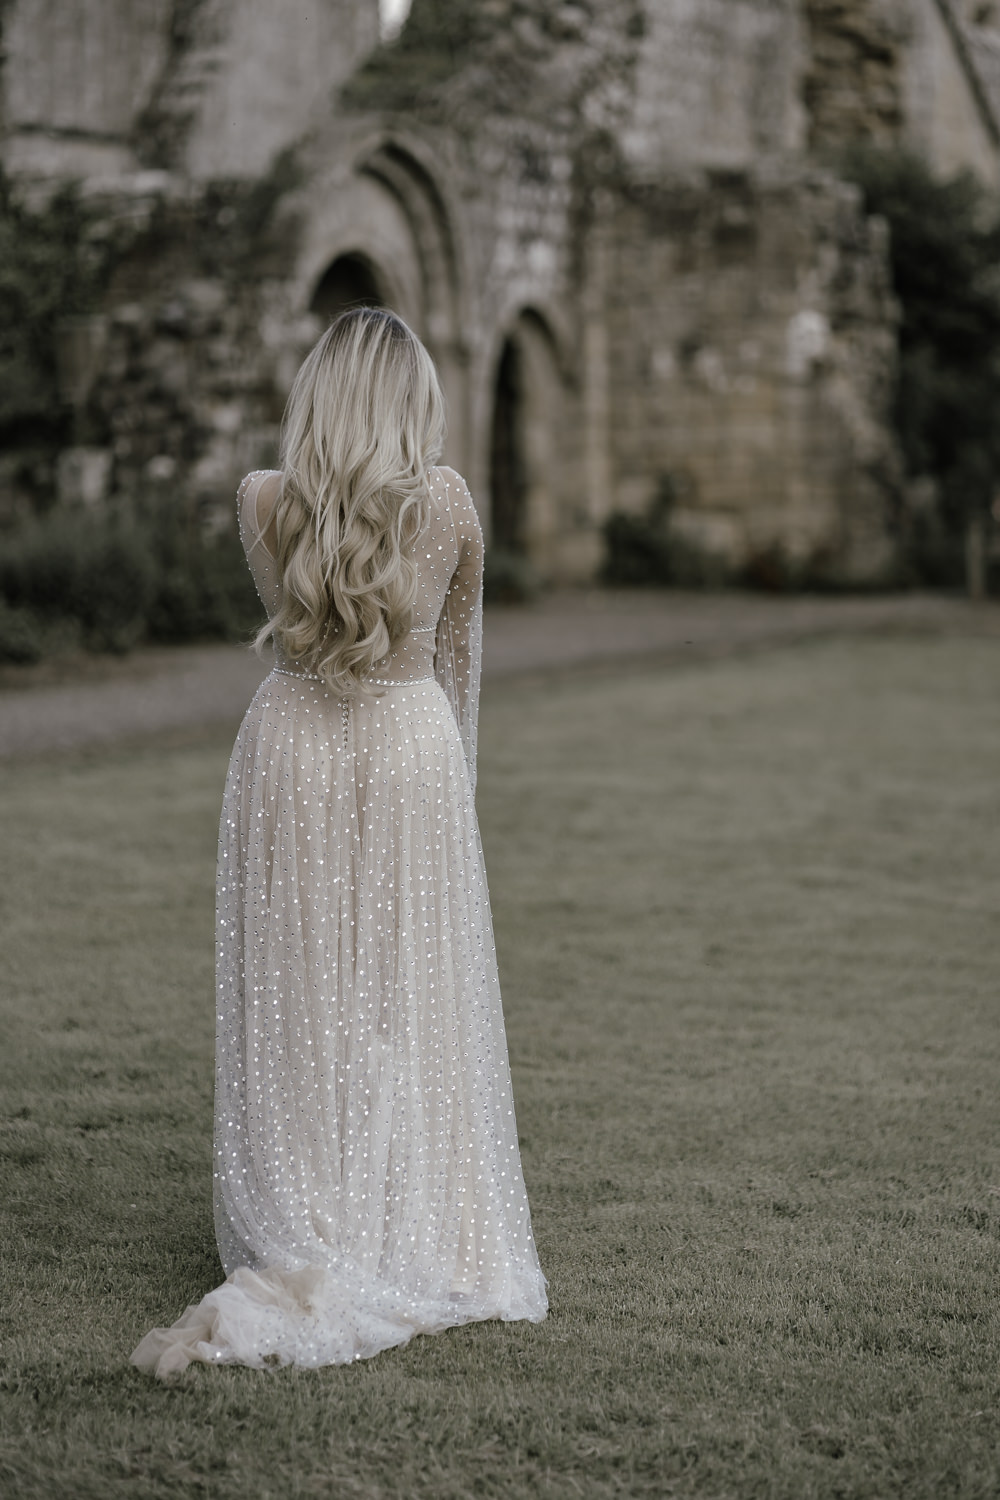 Dress Gown Bride Bridal Sparkle Gold Tulle Long Sleeves Midsummer Night's Dream Wedding Ideas Dani Louise Photography